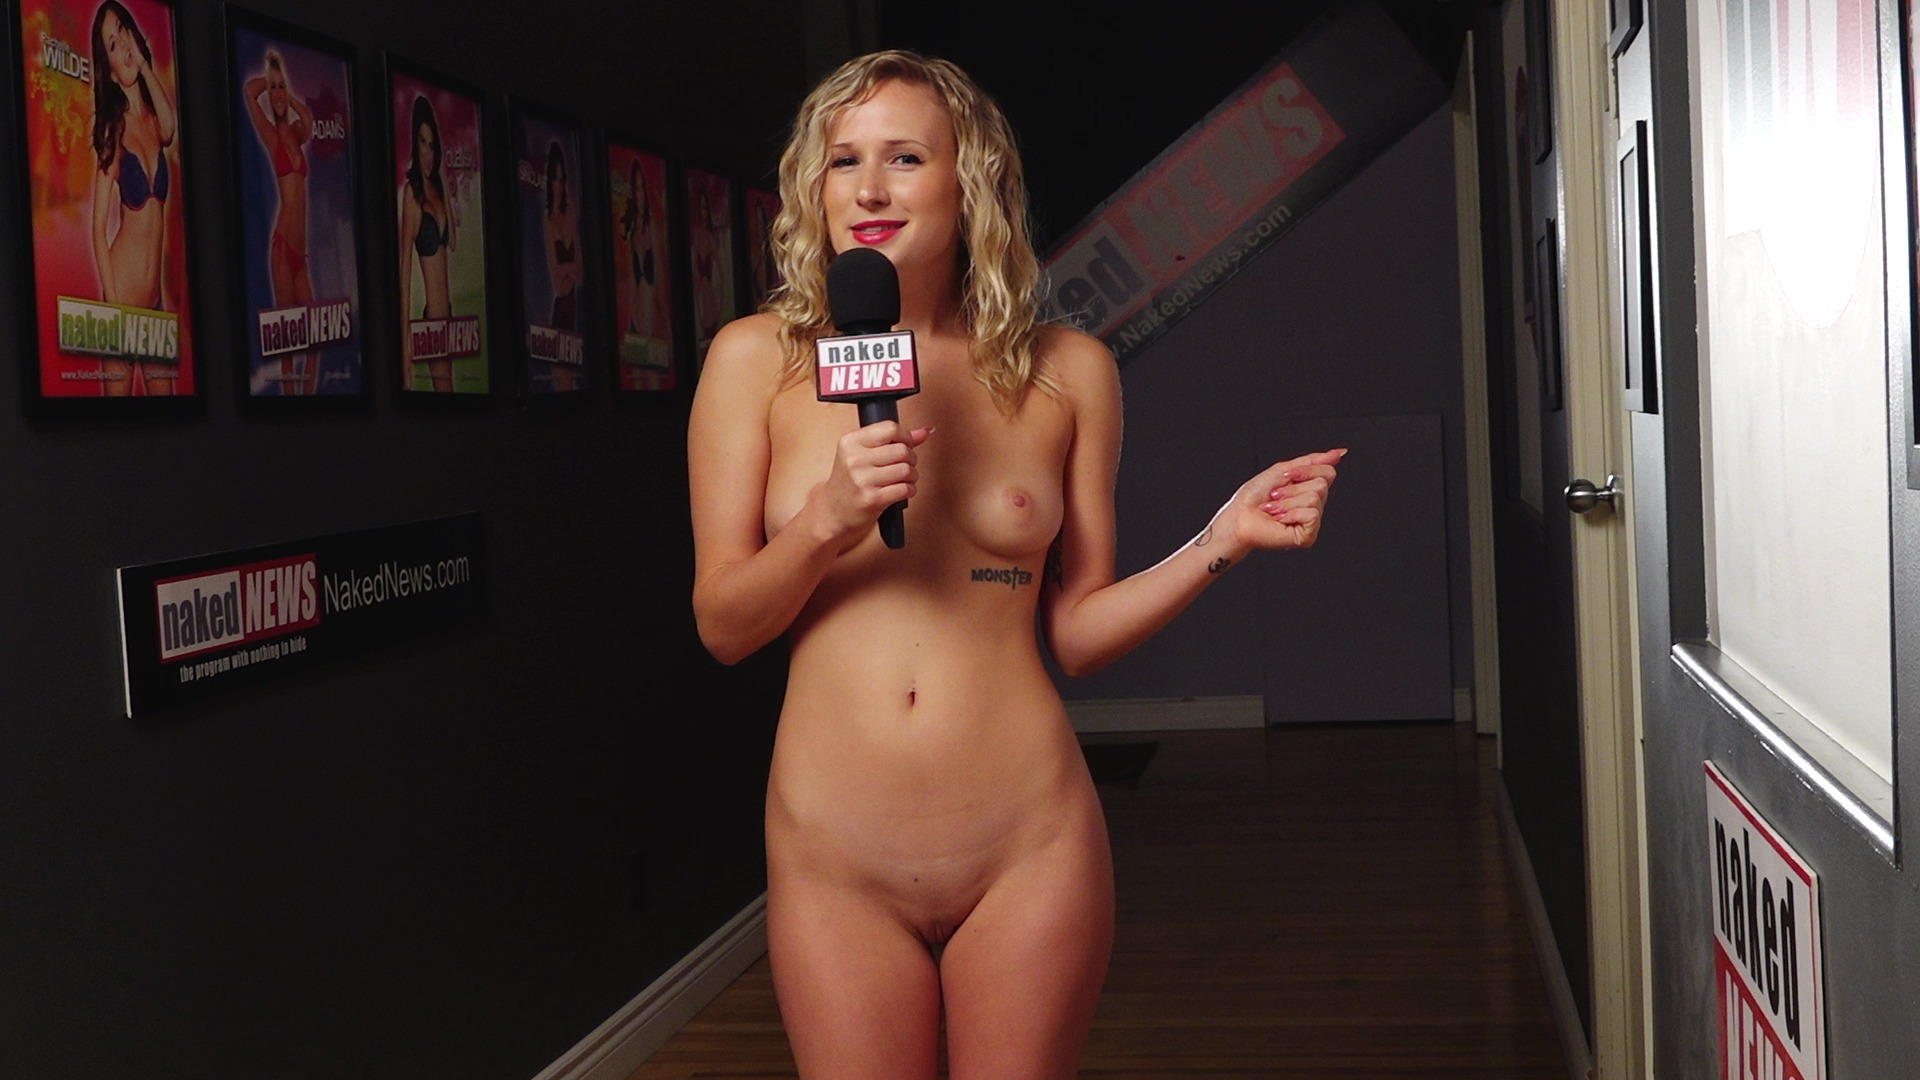 Blake lively nude photos naked sex pics